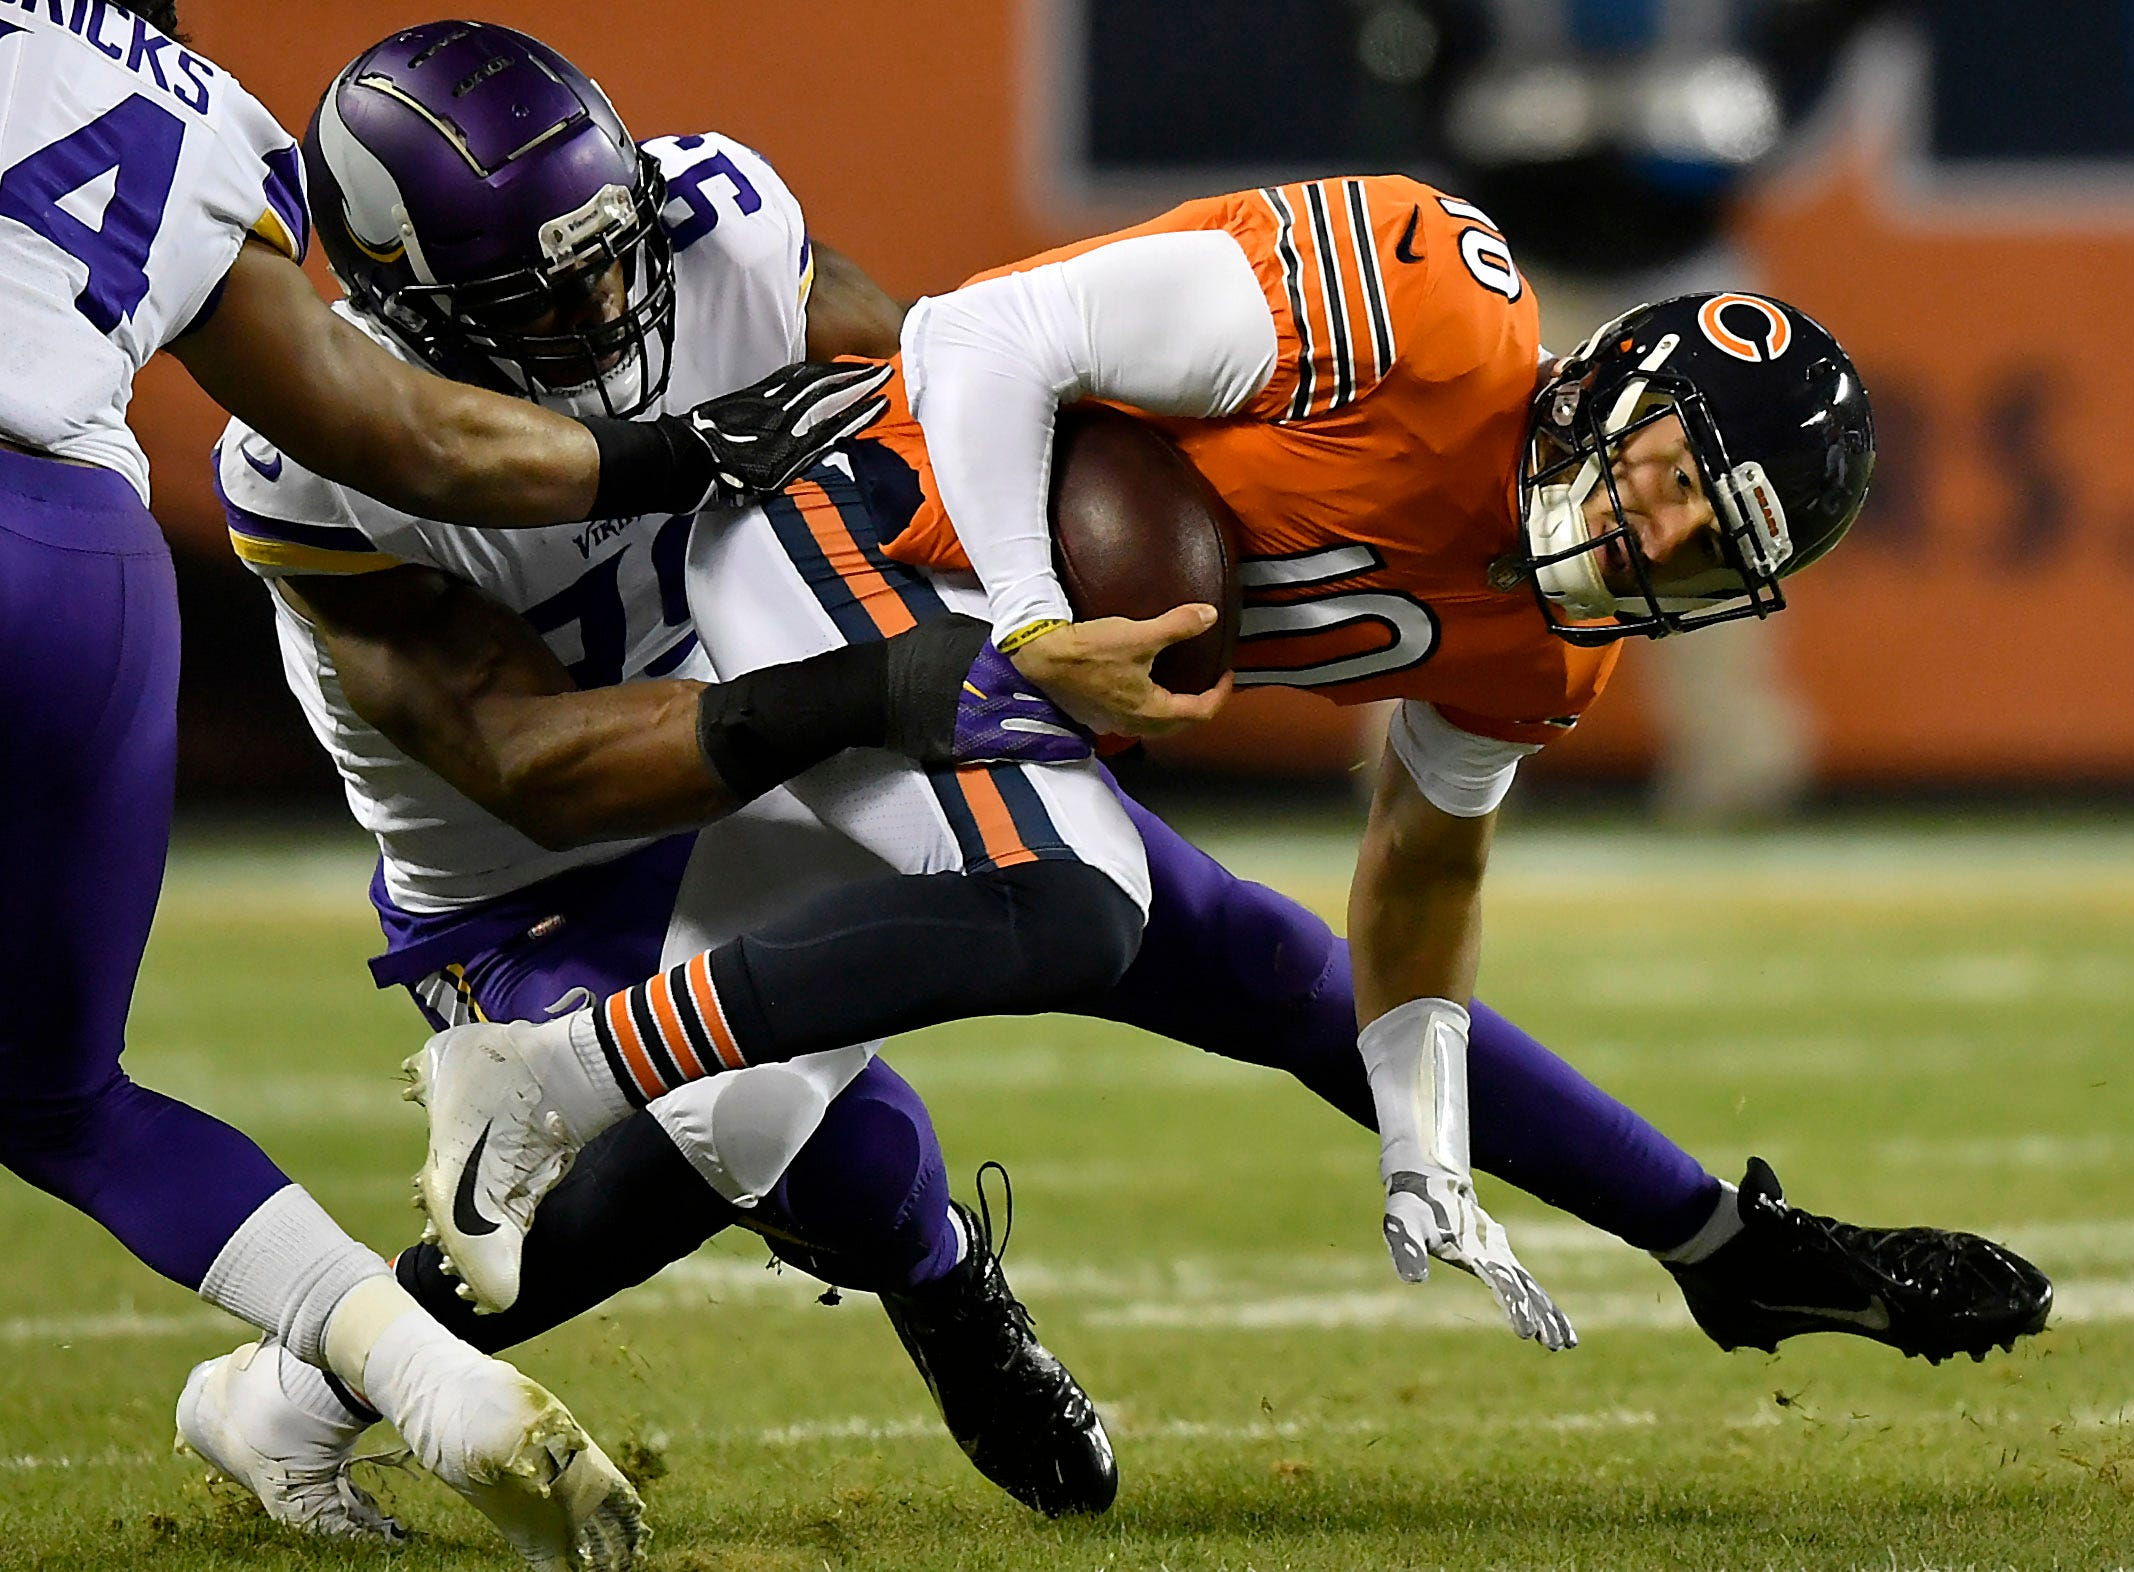 Chicago Bears quarterback Mitchell Trubisky is tackled by Minnesota Vikings defensive end Danielle Hunter at Soldier Field.